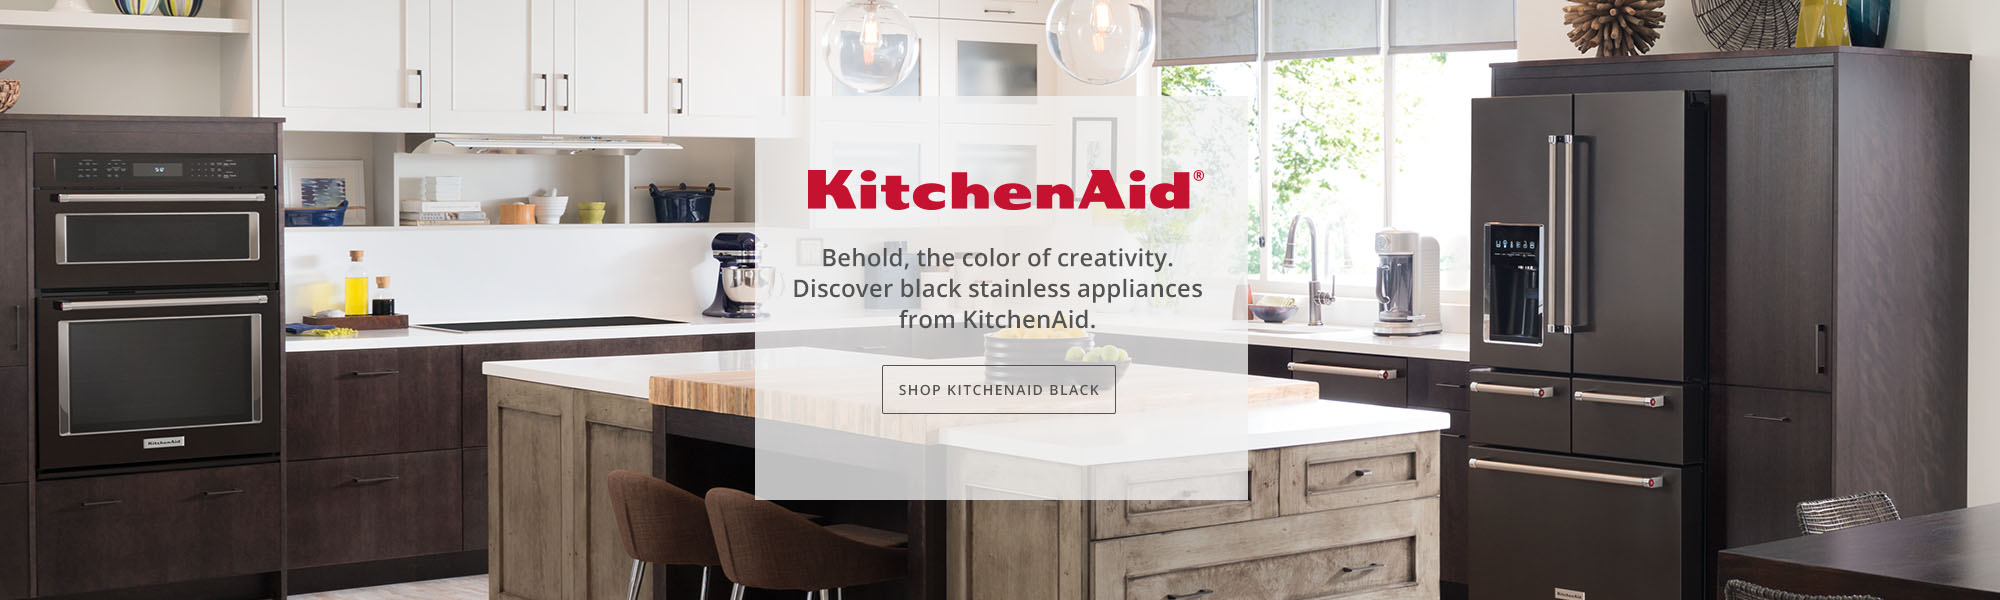 KitchenAid Black appliances